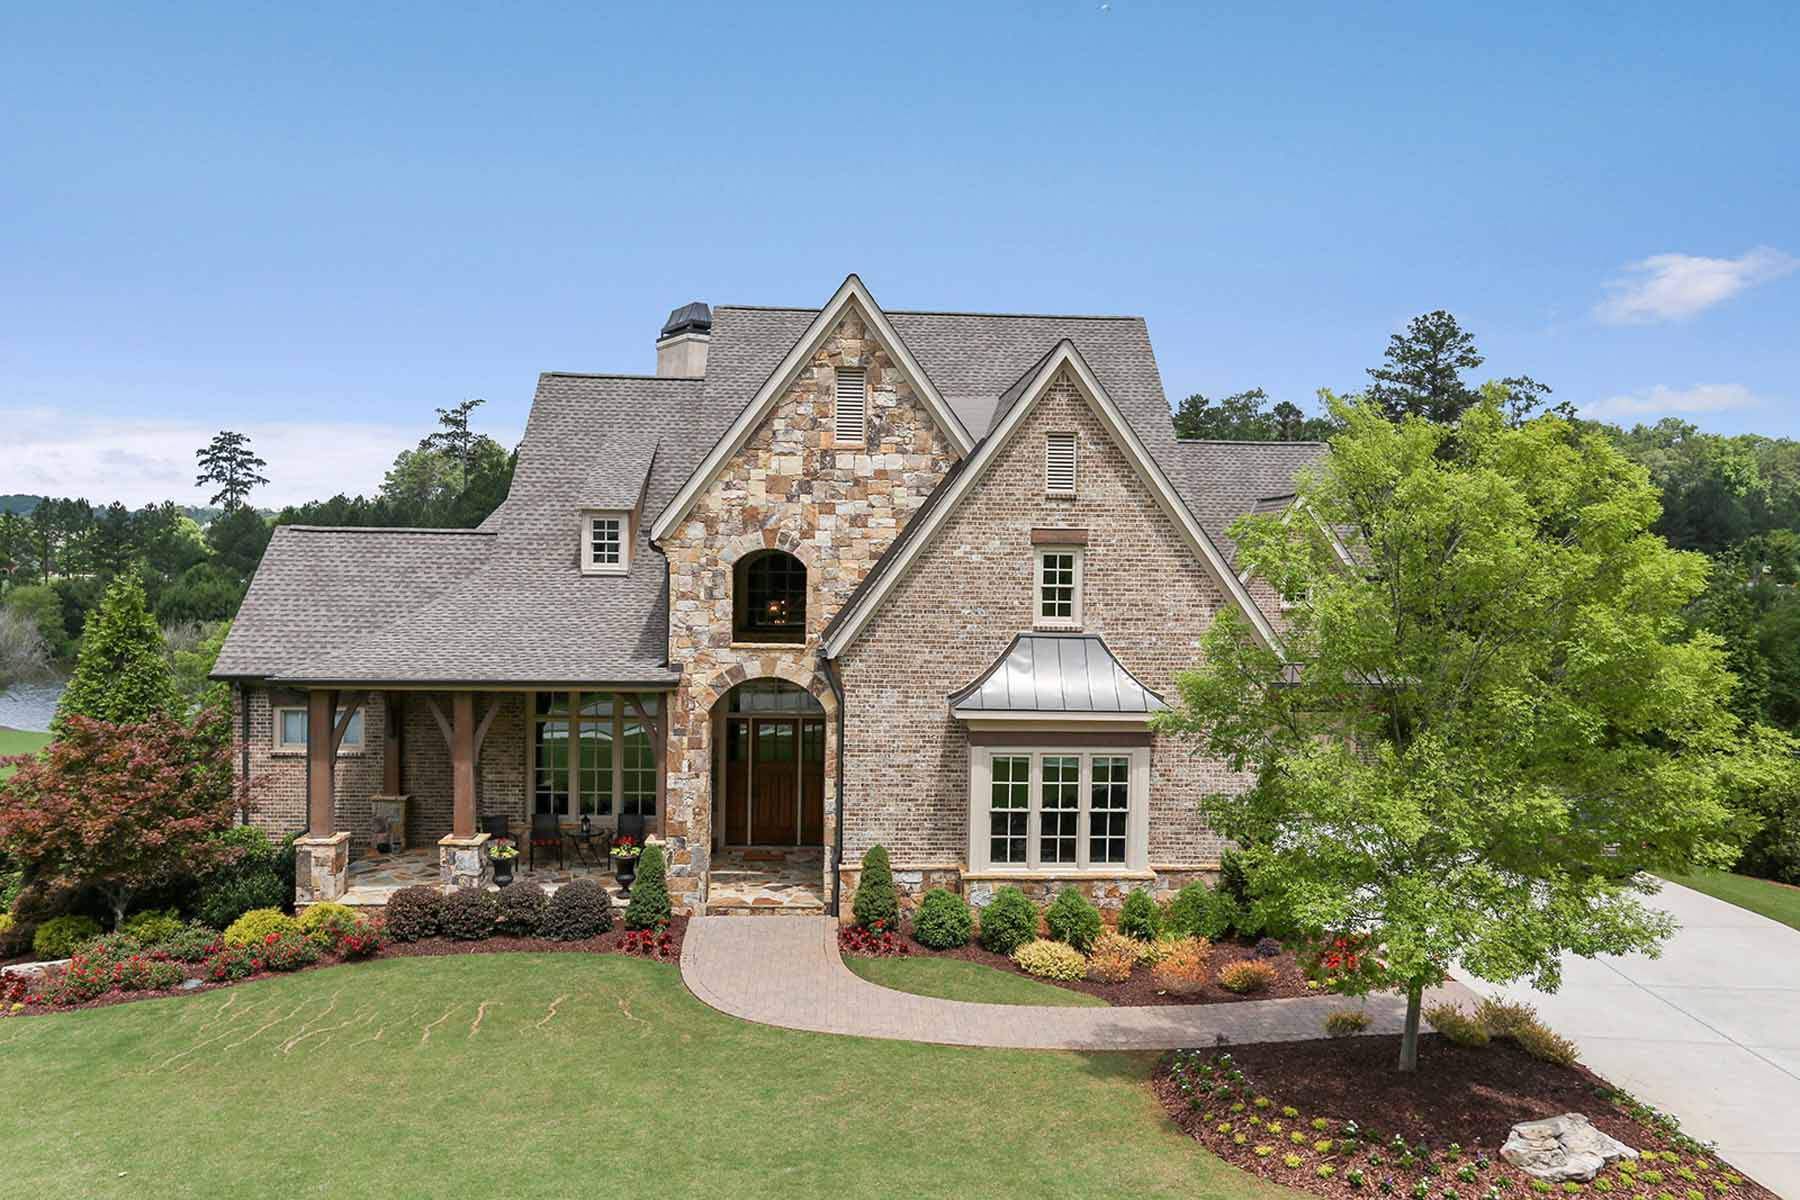 Single Family Home for Sale at Views of Lake and Golf Course 928 Crescent River Pass Suwanee, Georgia, 30024 United States